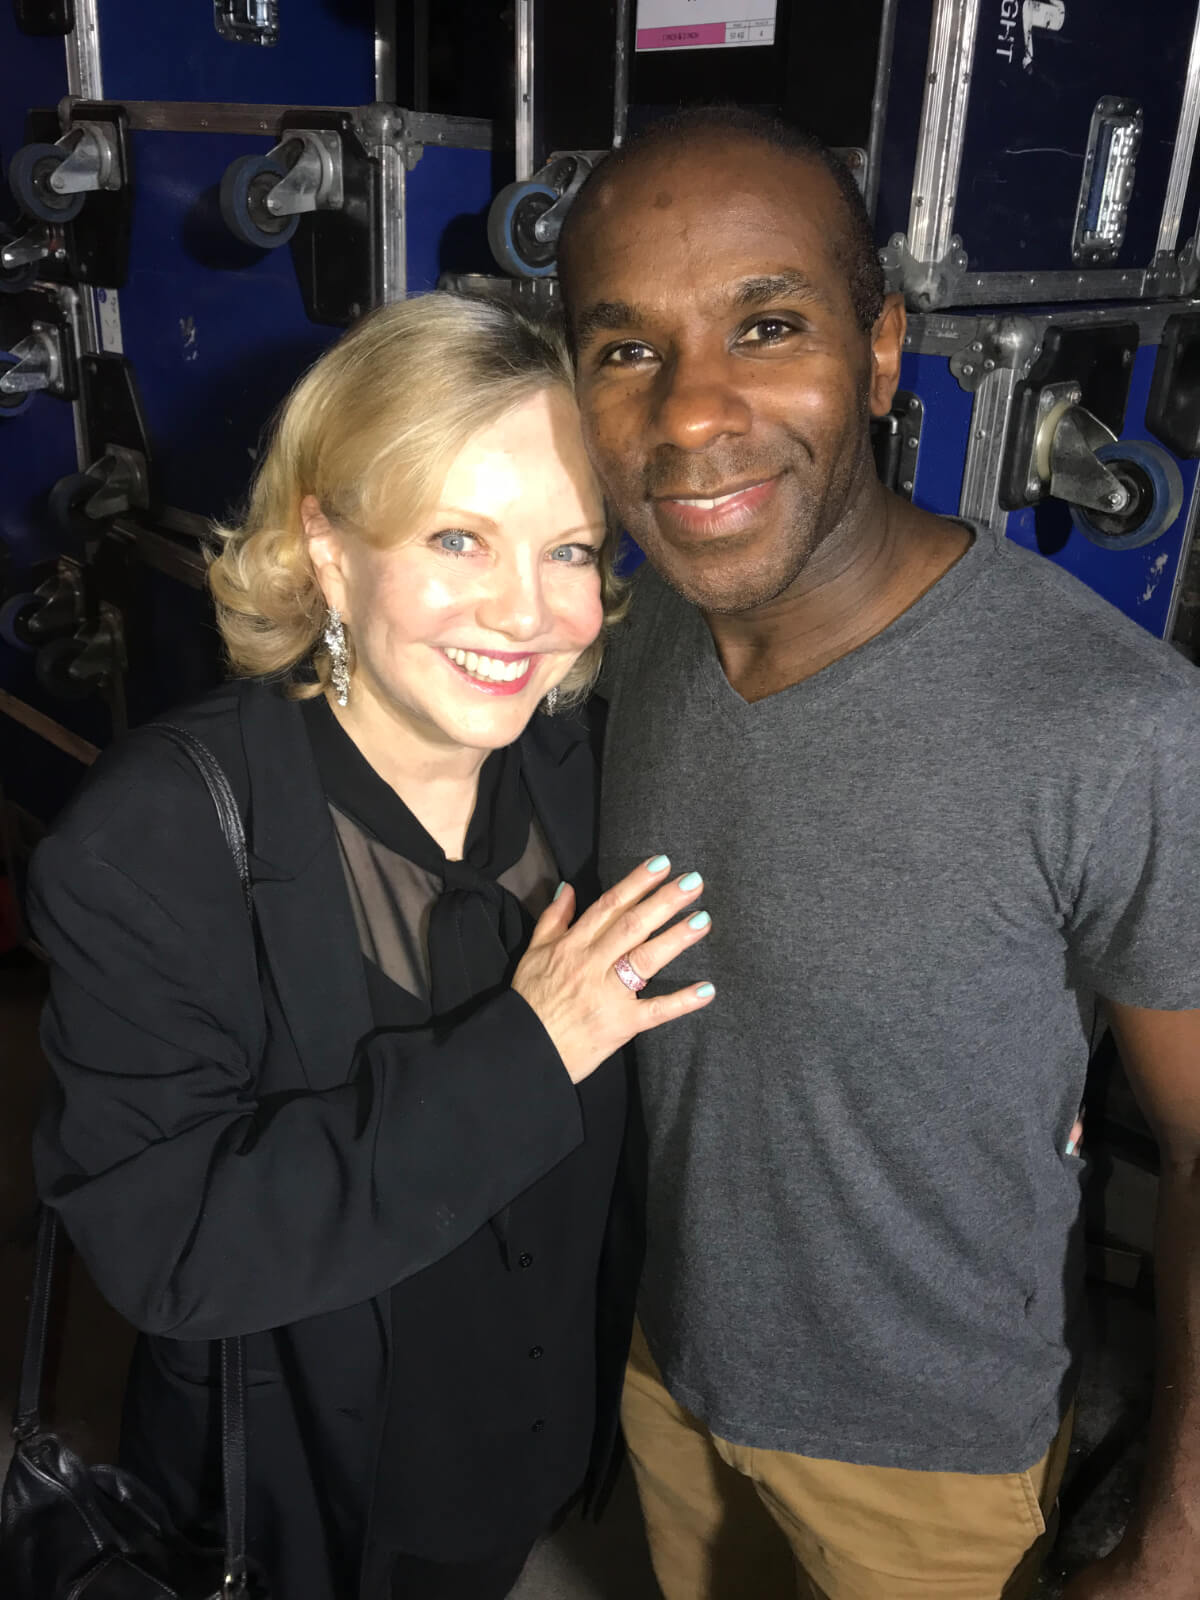 Susan Stroman with Associate Choreographer of West End's The Scottsboro Boys and Young Frankenstein, Richard Pitt. Both are backstage in front of blue equipment storage boxes.